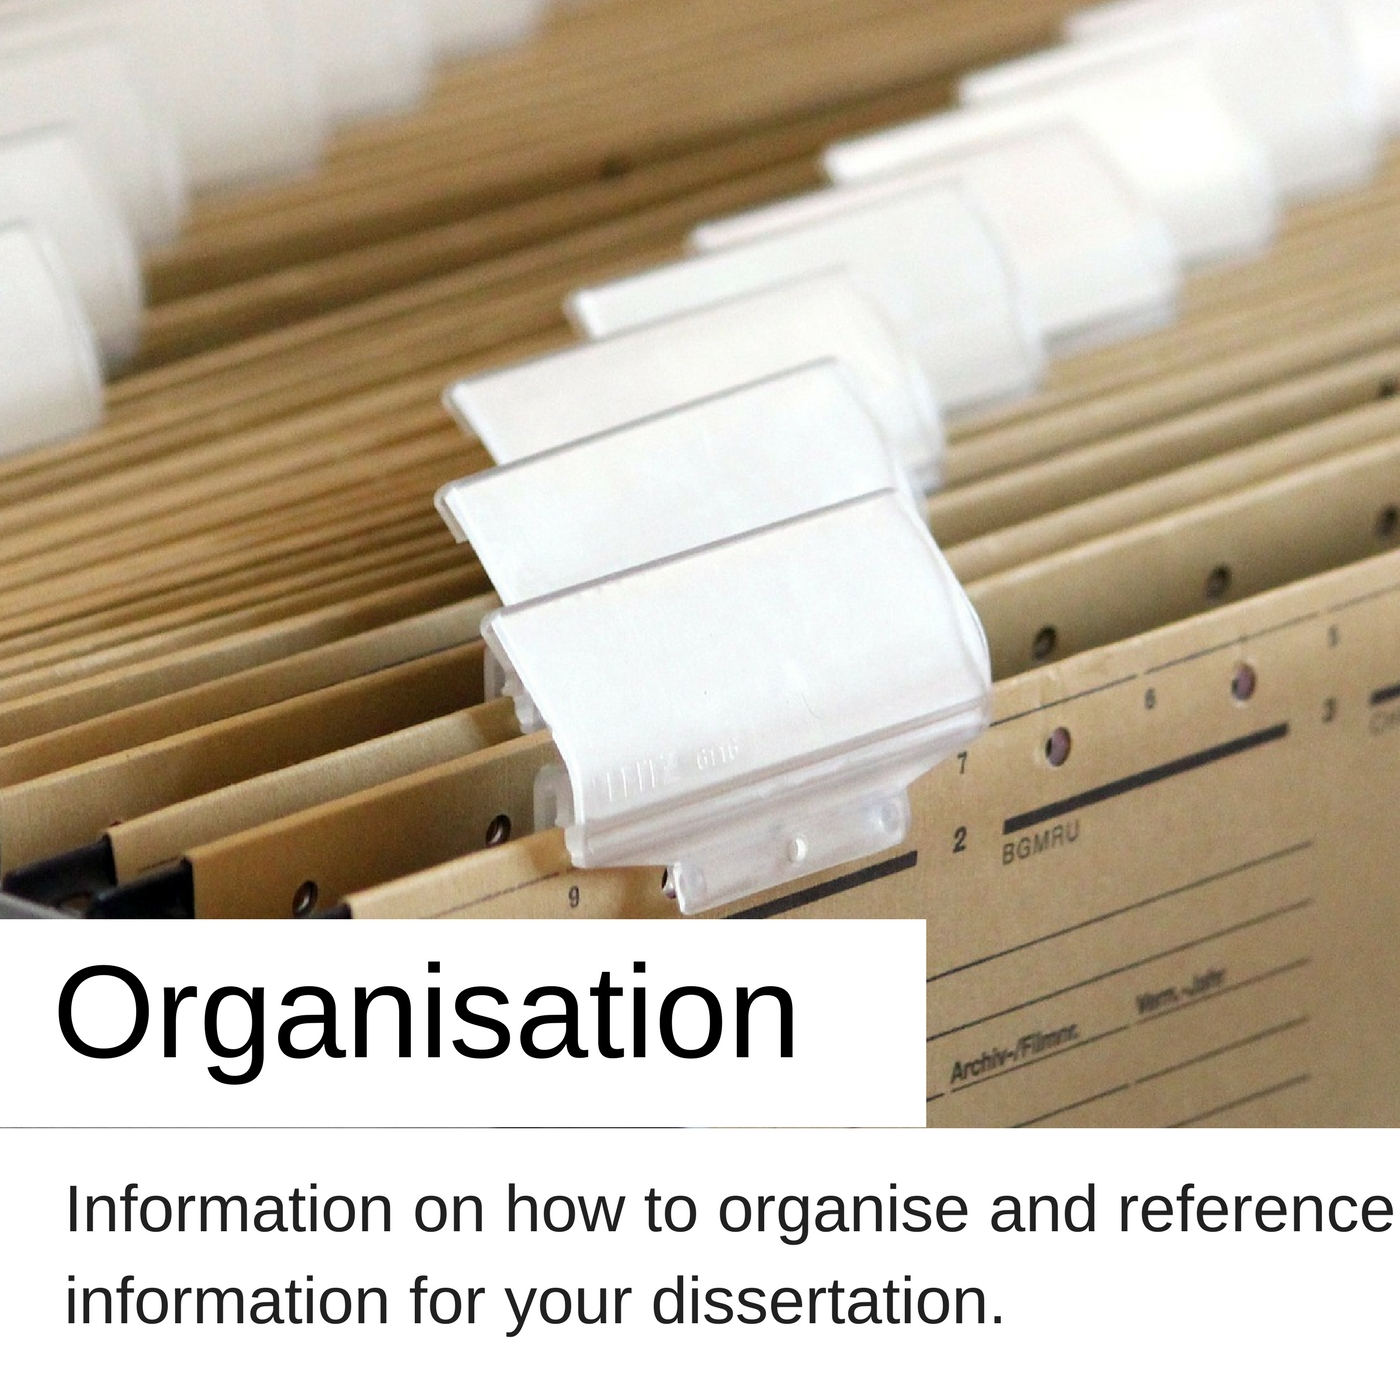 Organisation information on how to organise and reference information for your dissertation.